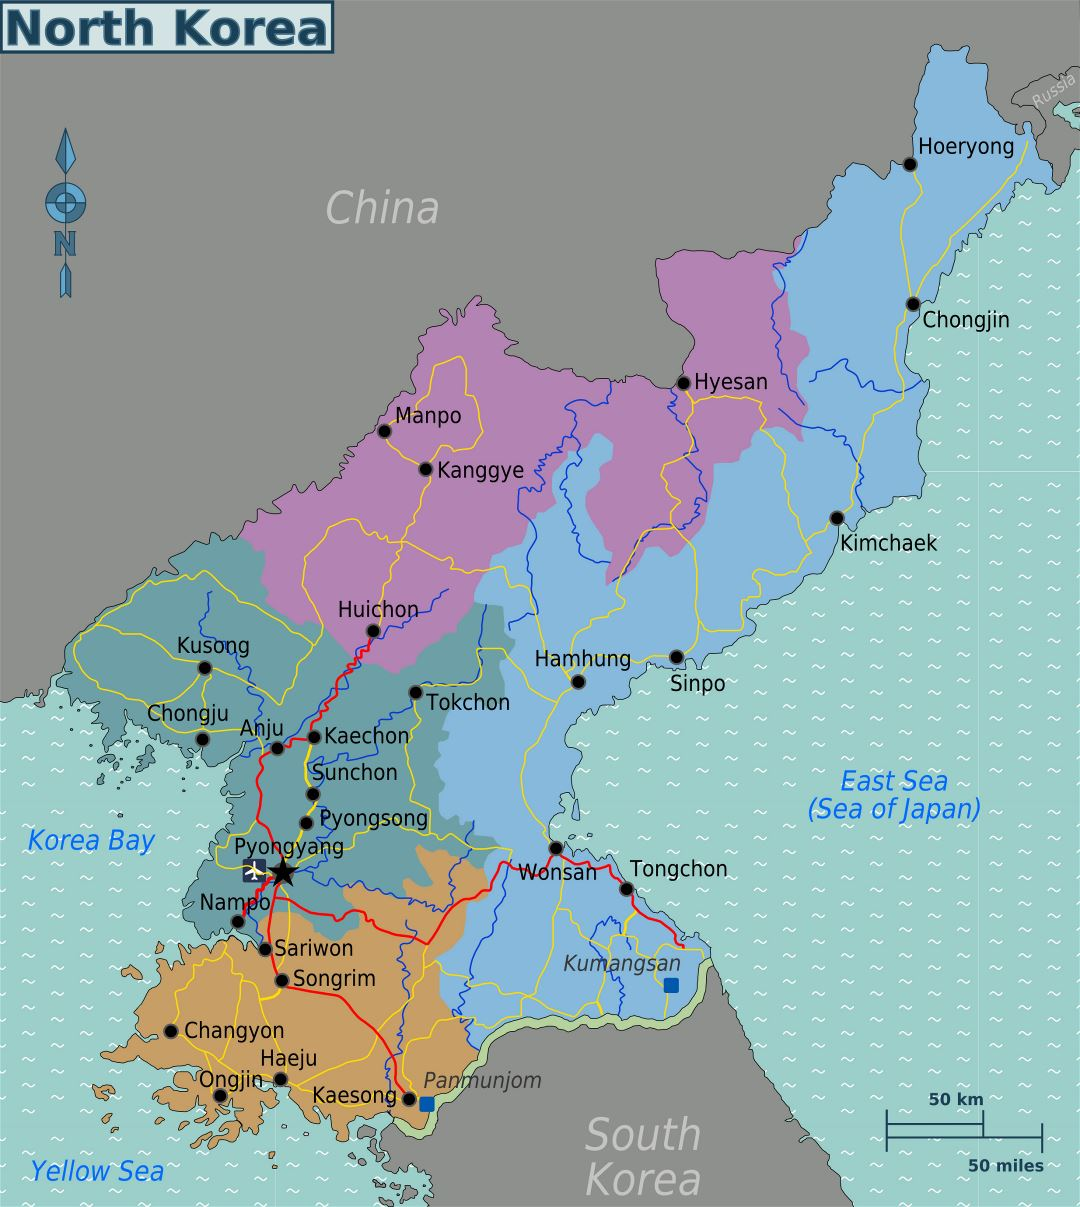 Large regions map of North Korea